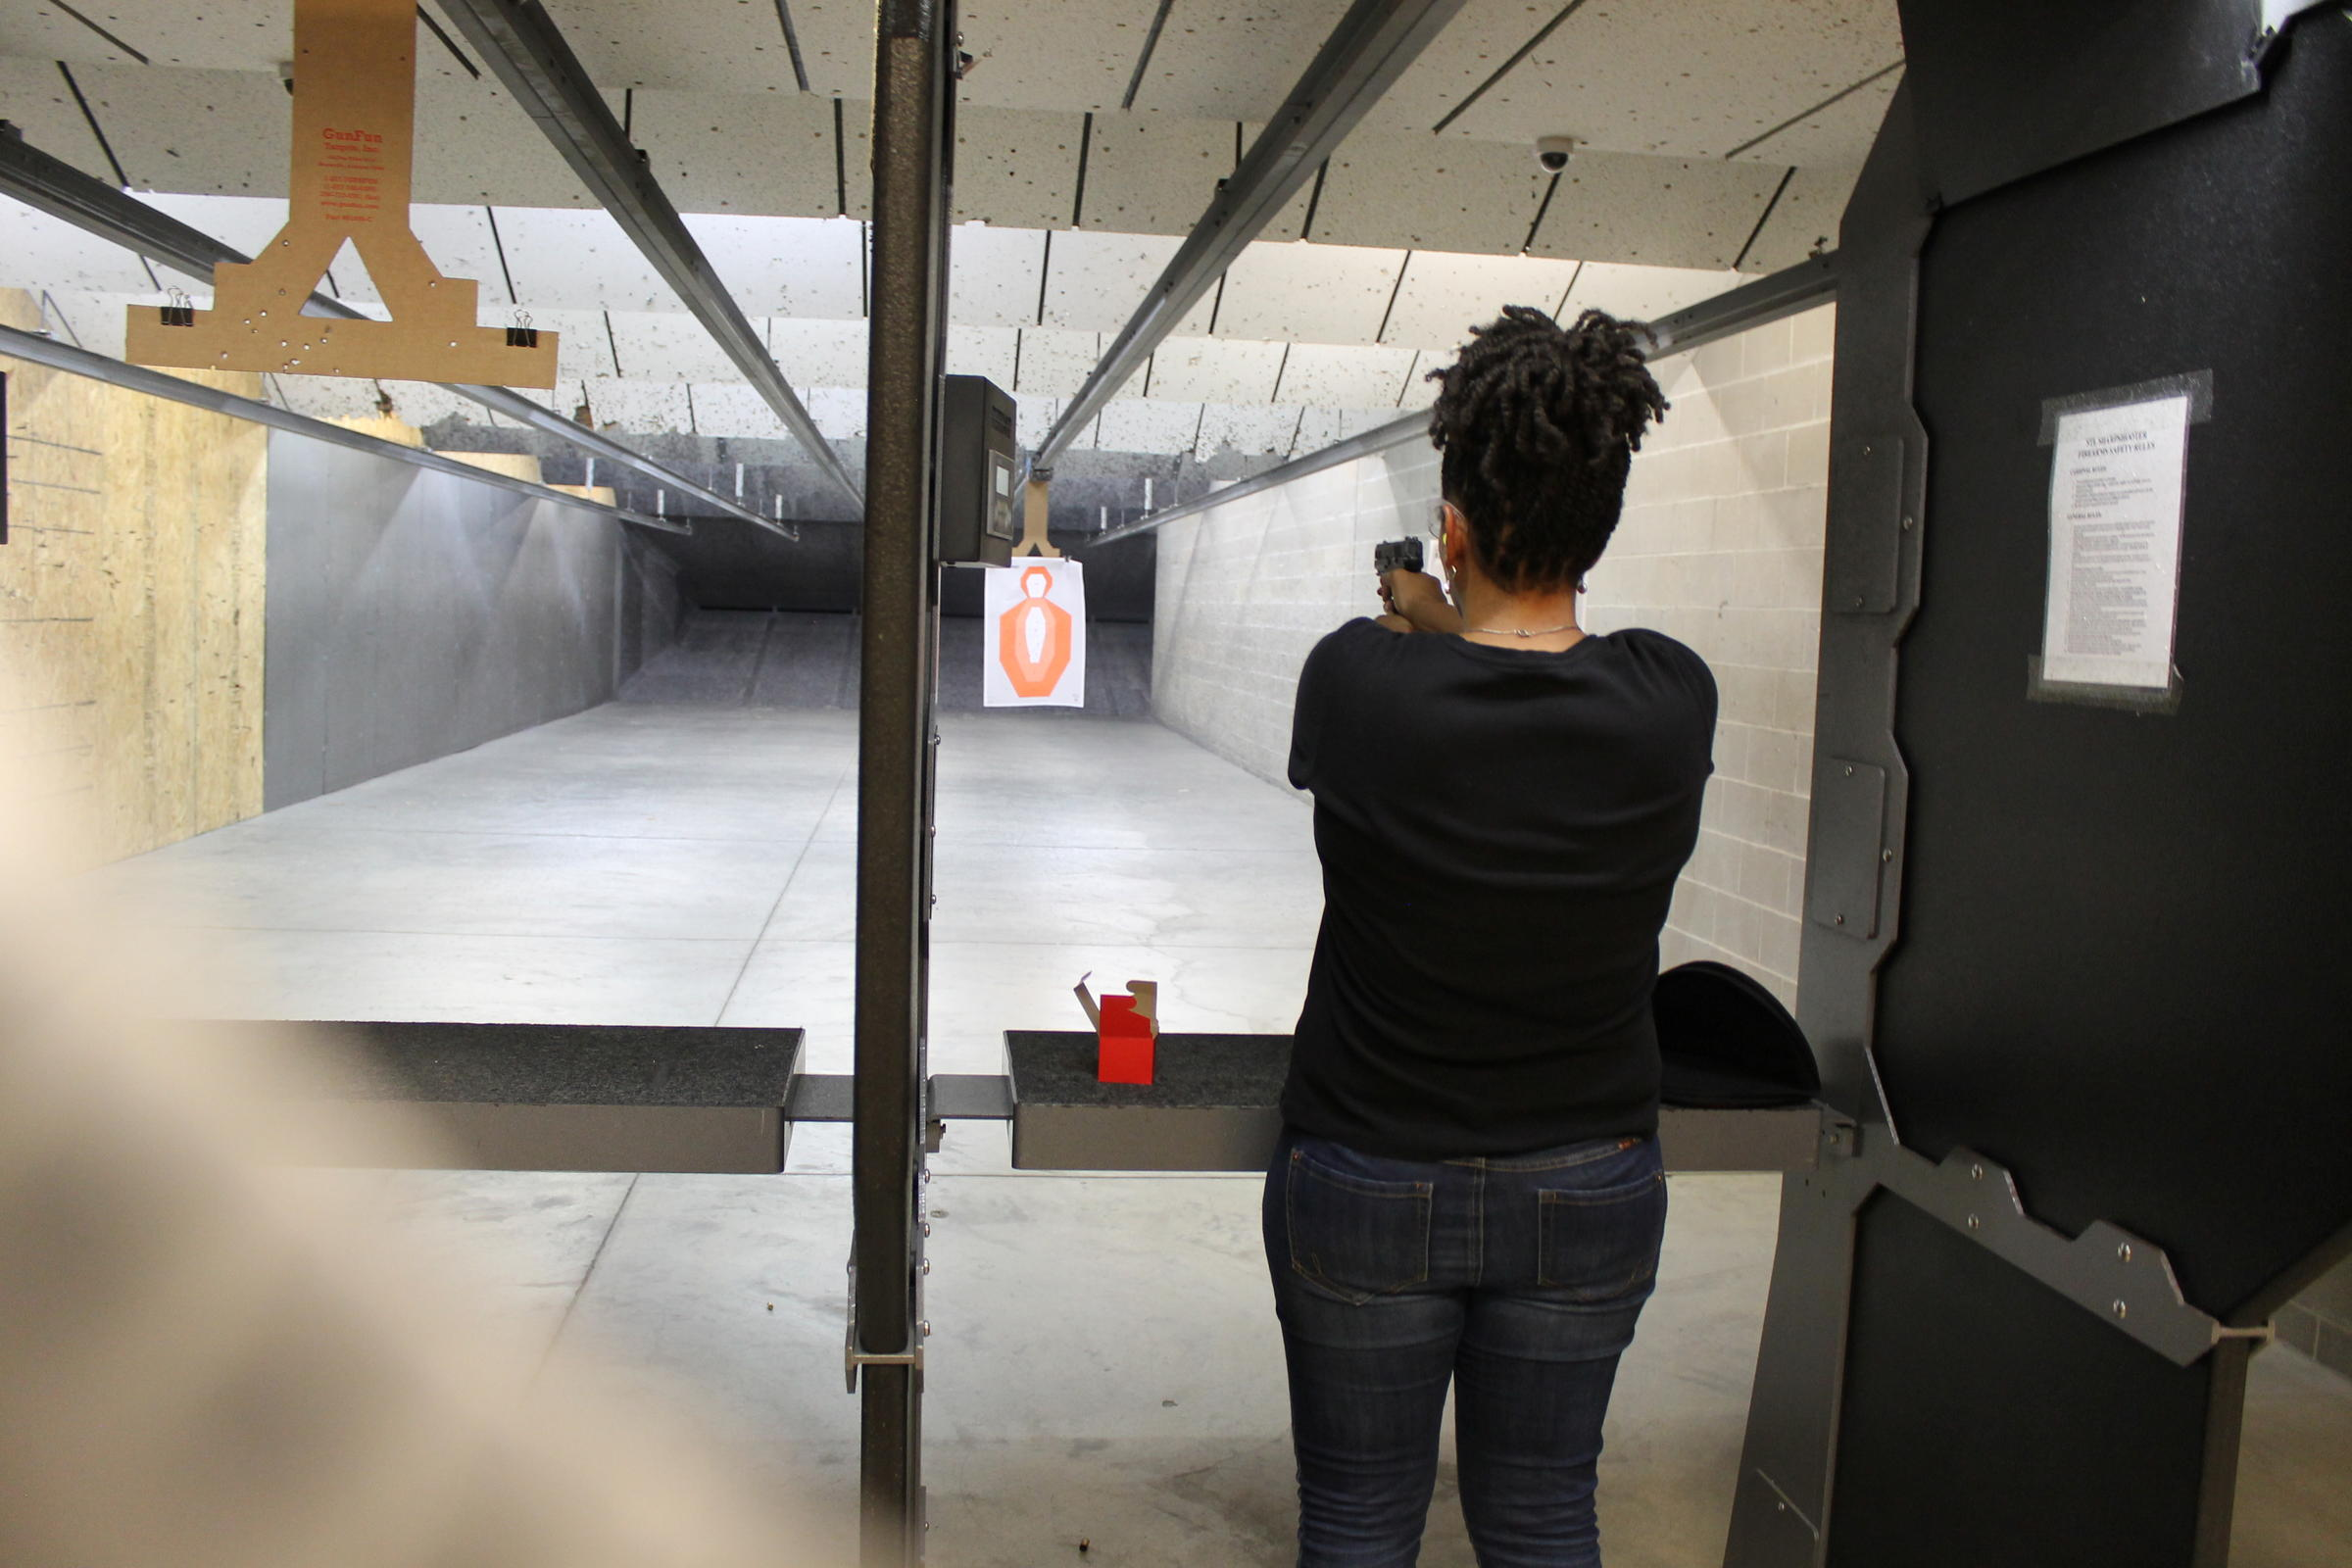 Learn to shoot, Best Gun Safety Course, Free Tutorials